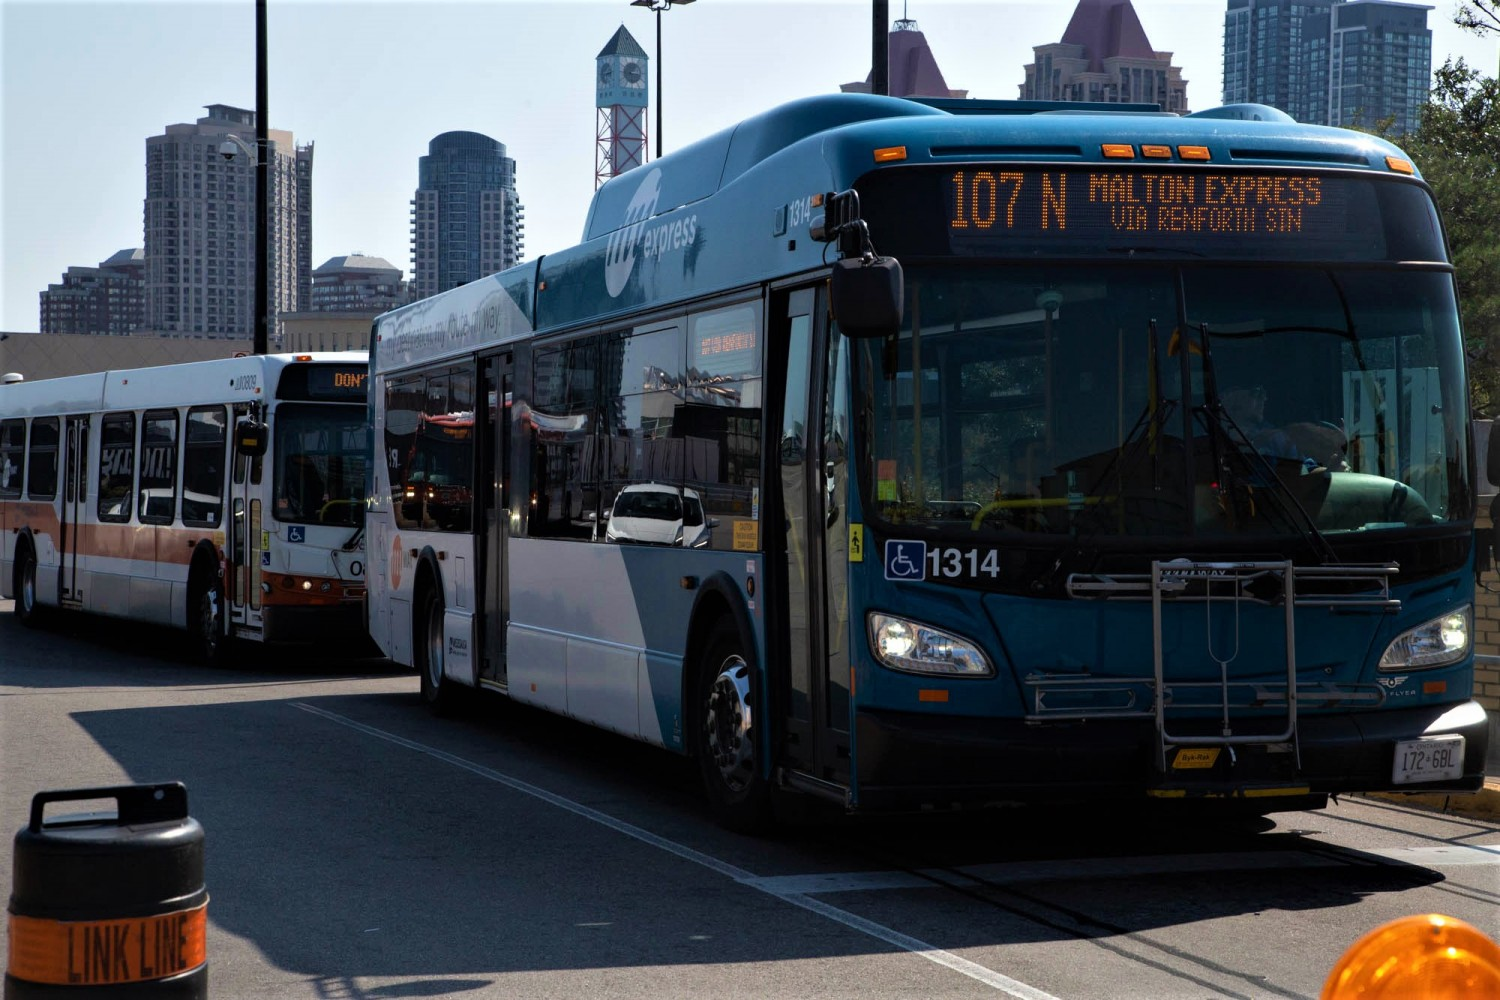 Mississauga transit union wants employees tested for COVID-19 after case linked to local bus travel